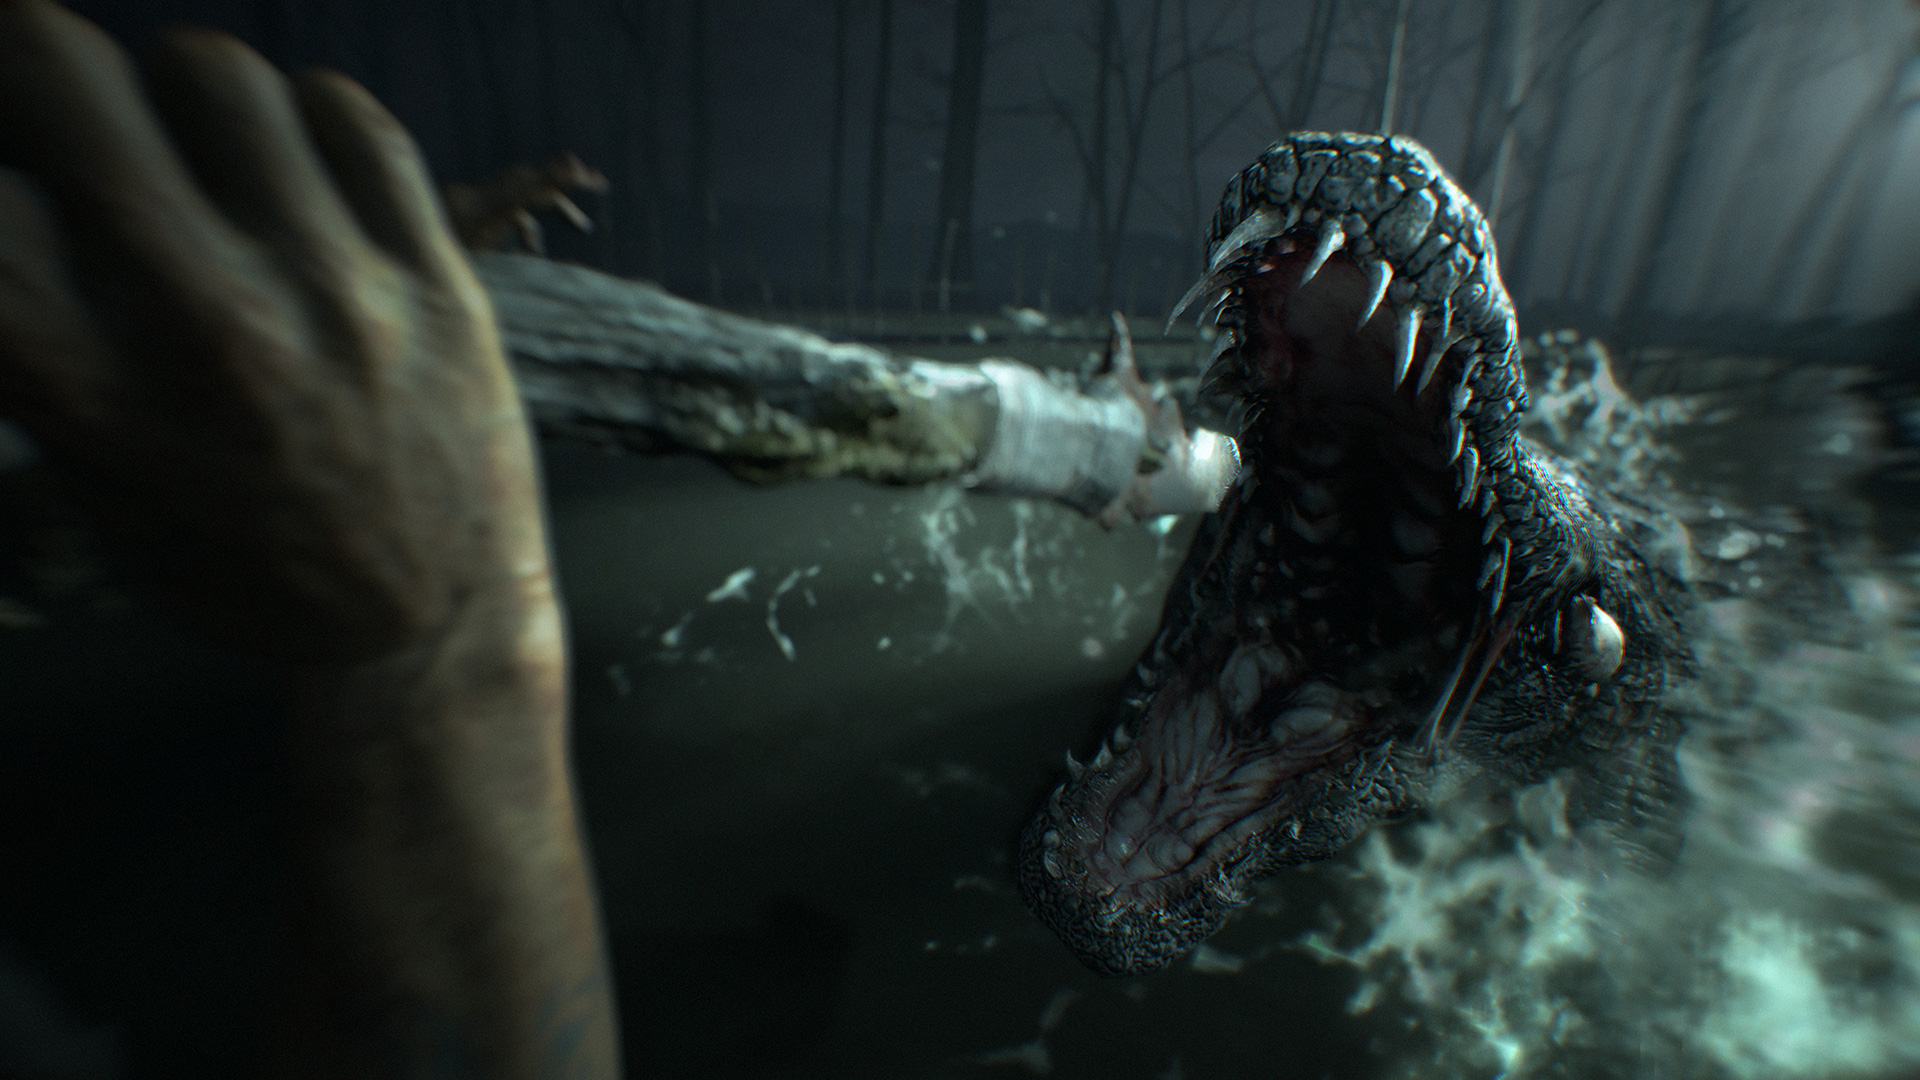 Throwing a spear at an alligator in End of Zoe.